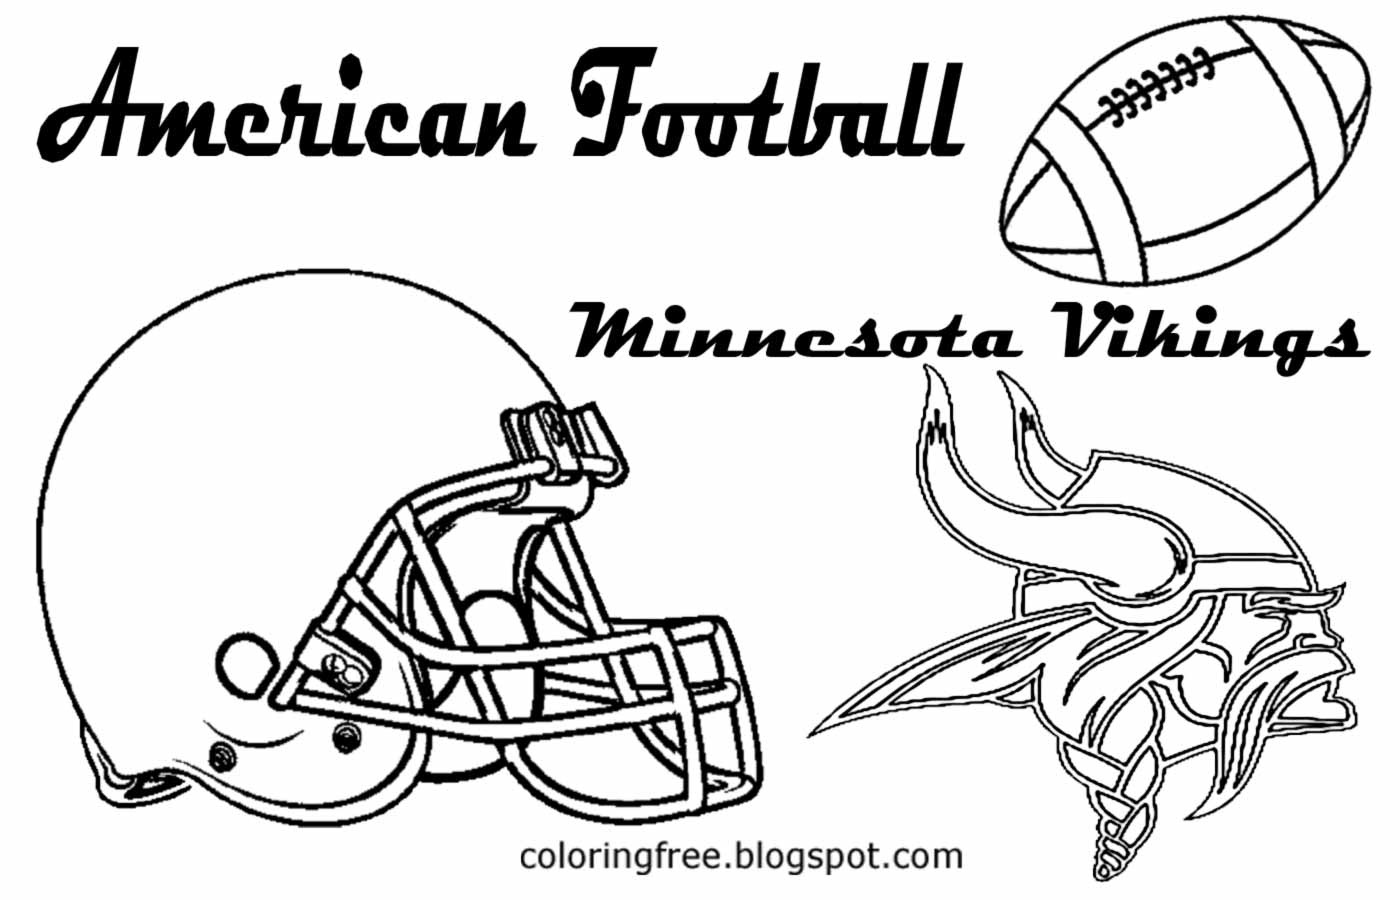 printable coloring pages vikings minnesota vikings clipart american football gridiron coloring pages for boys us